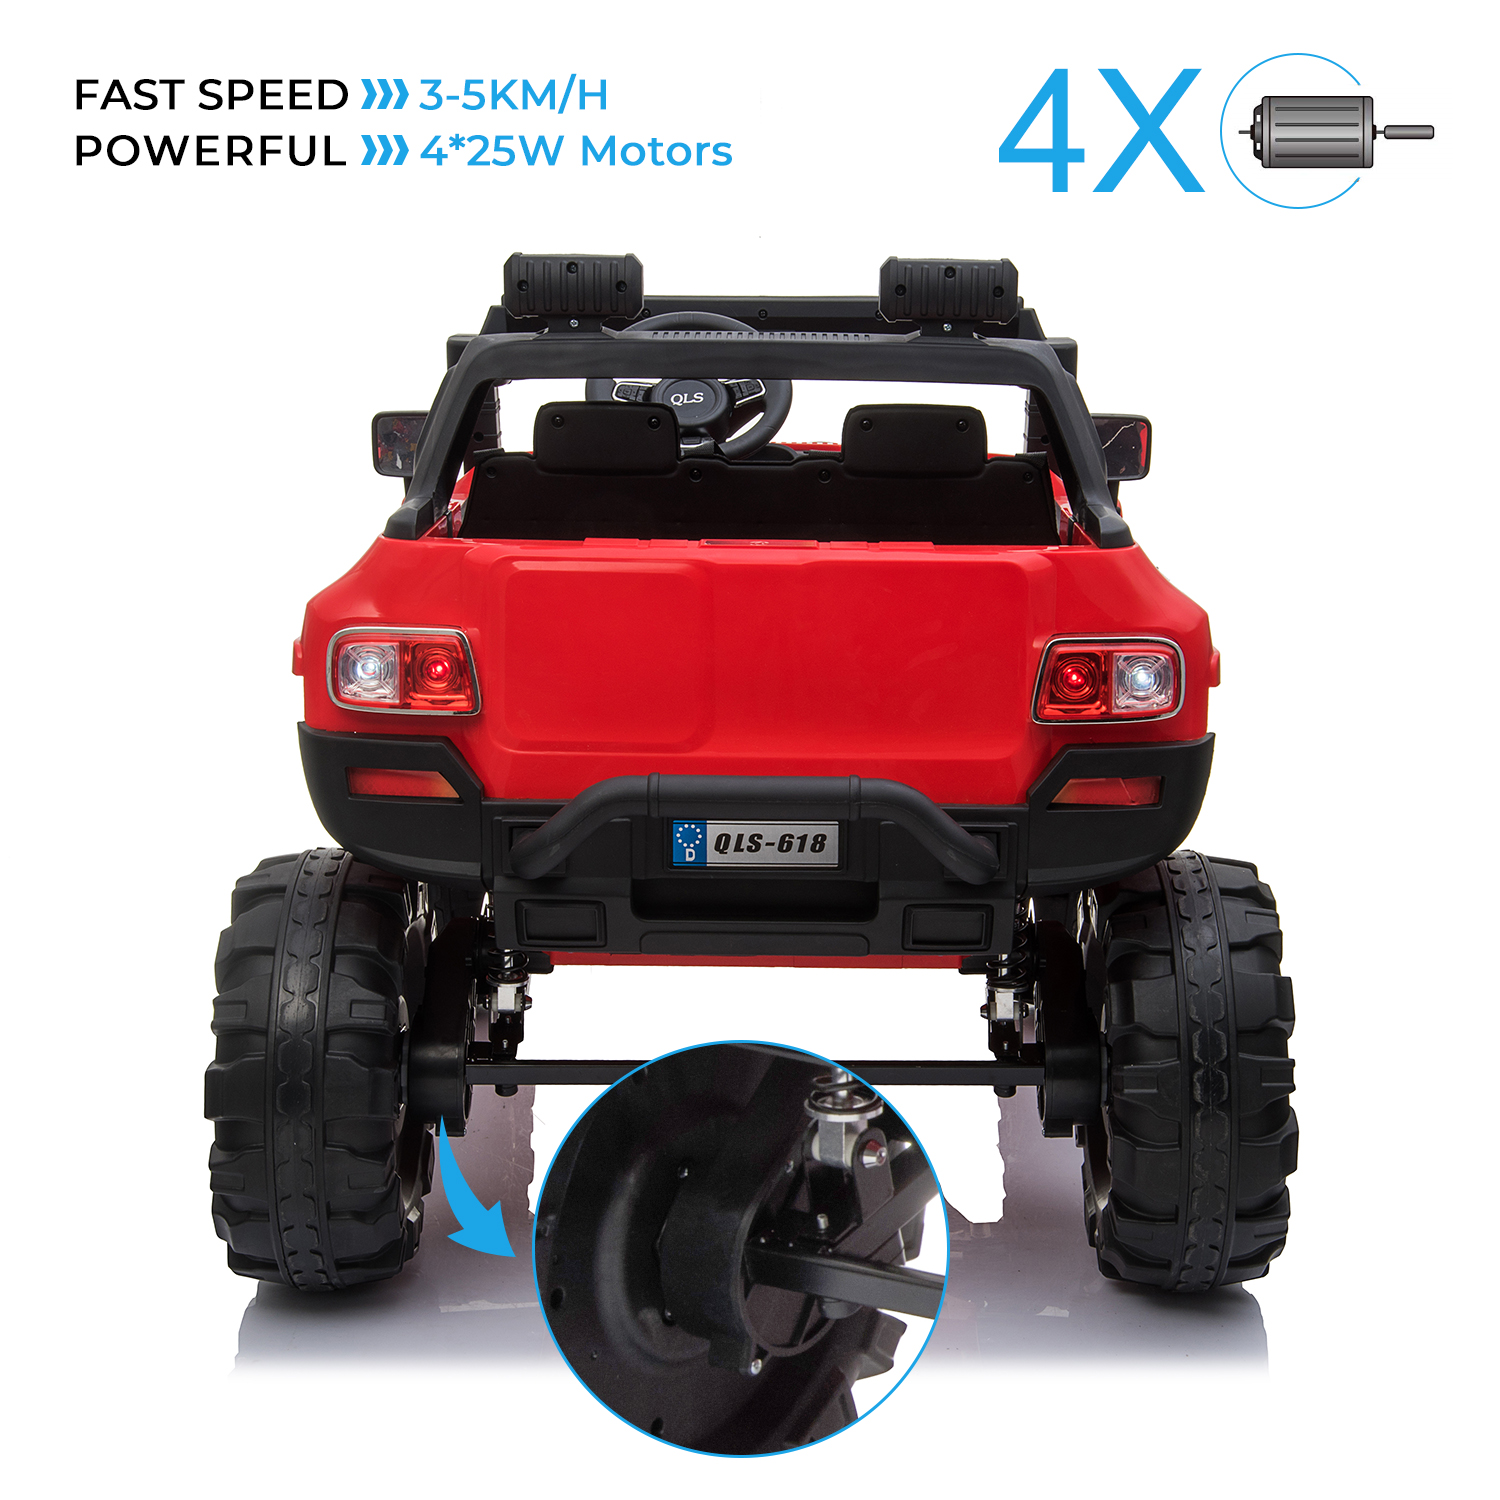 2-Seaters-4-4-Off-Road-Electric-12V-Ride-on-Car-with-Remote-Control miniature 21